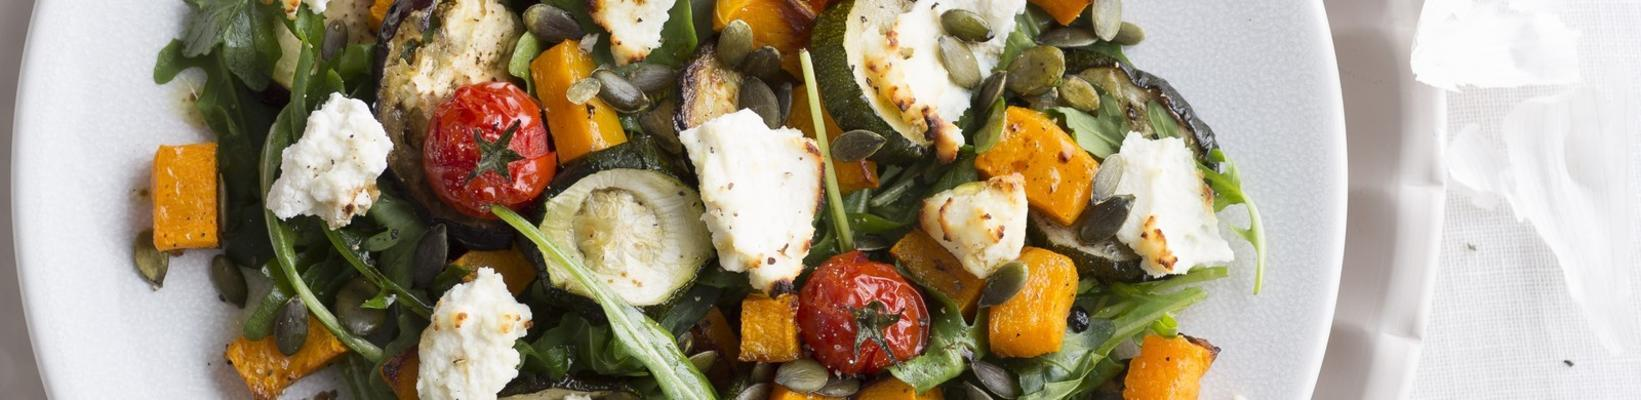 grilled autumn vegetable salad with ricotta